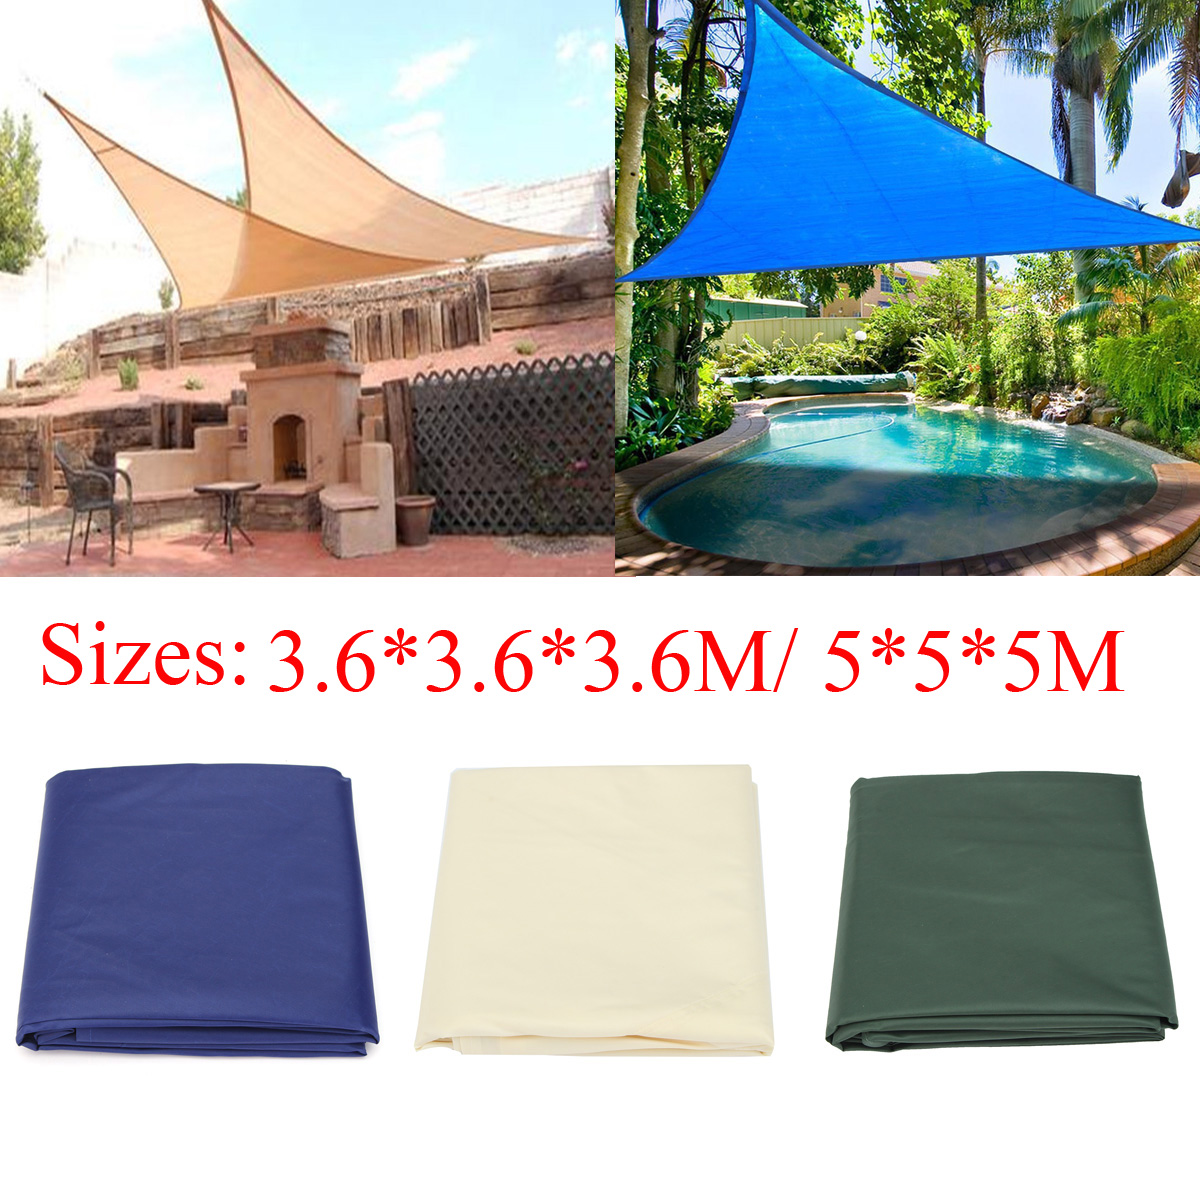 IPRee™ 3.6x3.6x3.6M/5x5x5M Sunshade Sail Anti-UV Outdooors Patio Lawn Triangle Tent Canopy